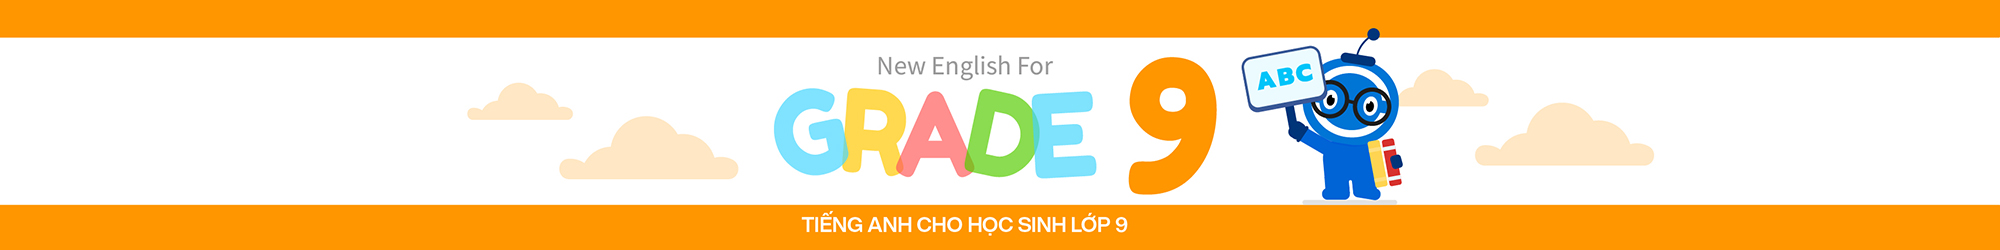 NEW ENGLISH FOR GRADE 9